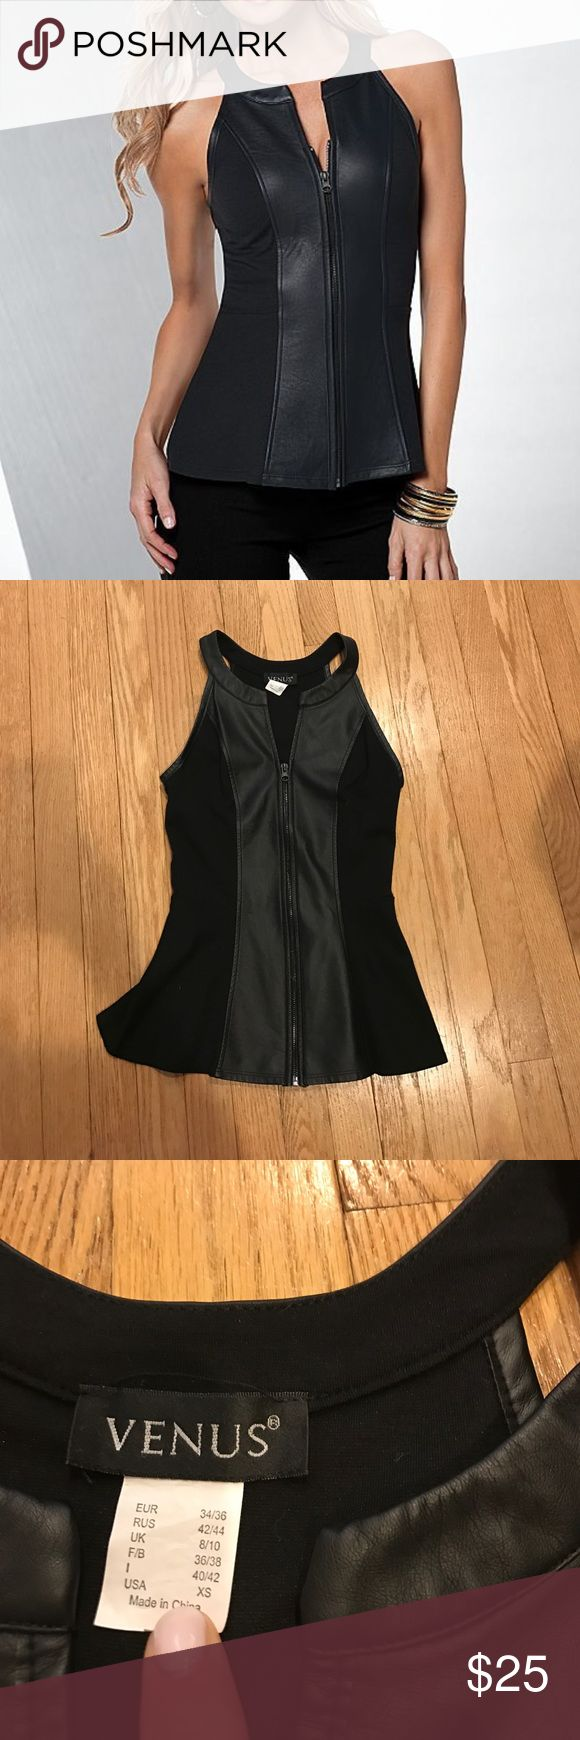 Faux Leather Peplum top Worn maybe once and in excellent condition! VENUS faux leather peplum top . Pretty with a peplum hem and daring in faux leather! Size XS   Rayon/nylon/spandex; trim: polyurethane. Imported venus Tops Tank Tops